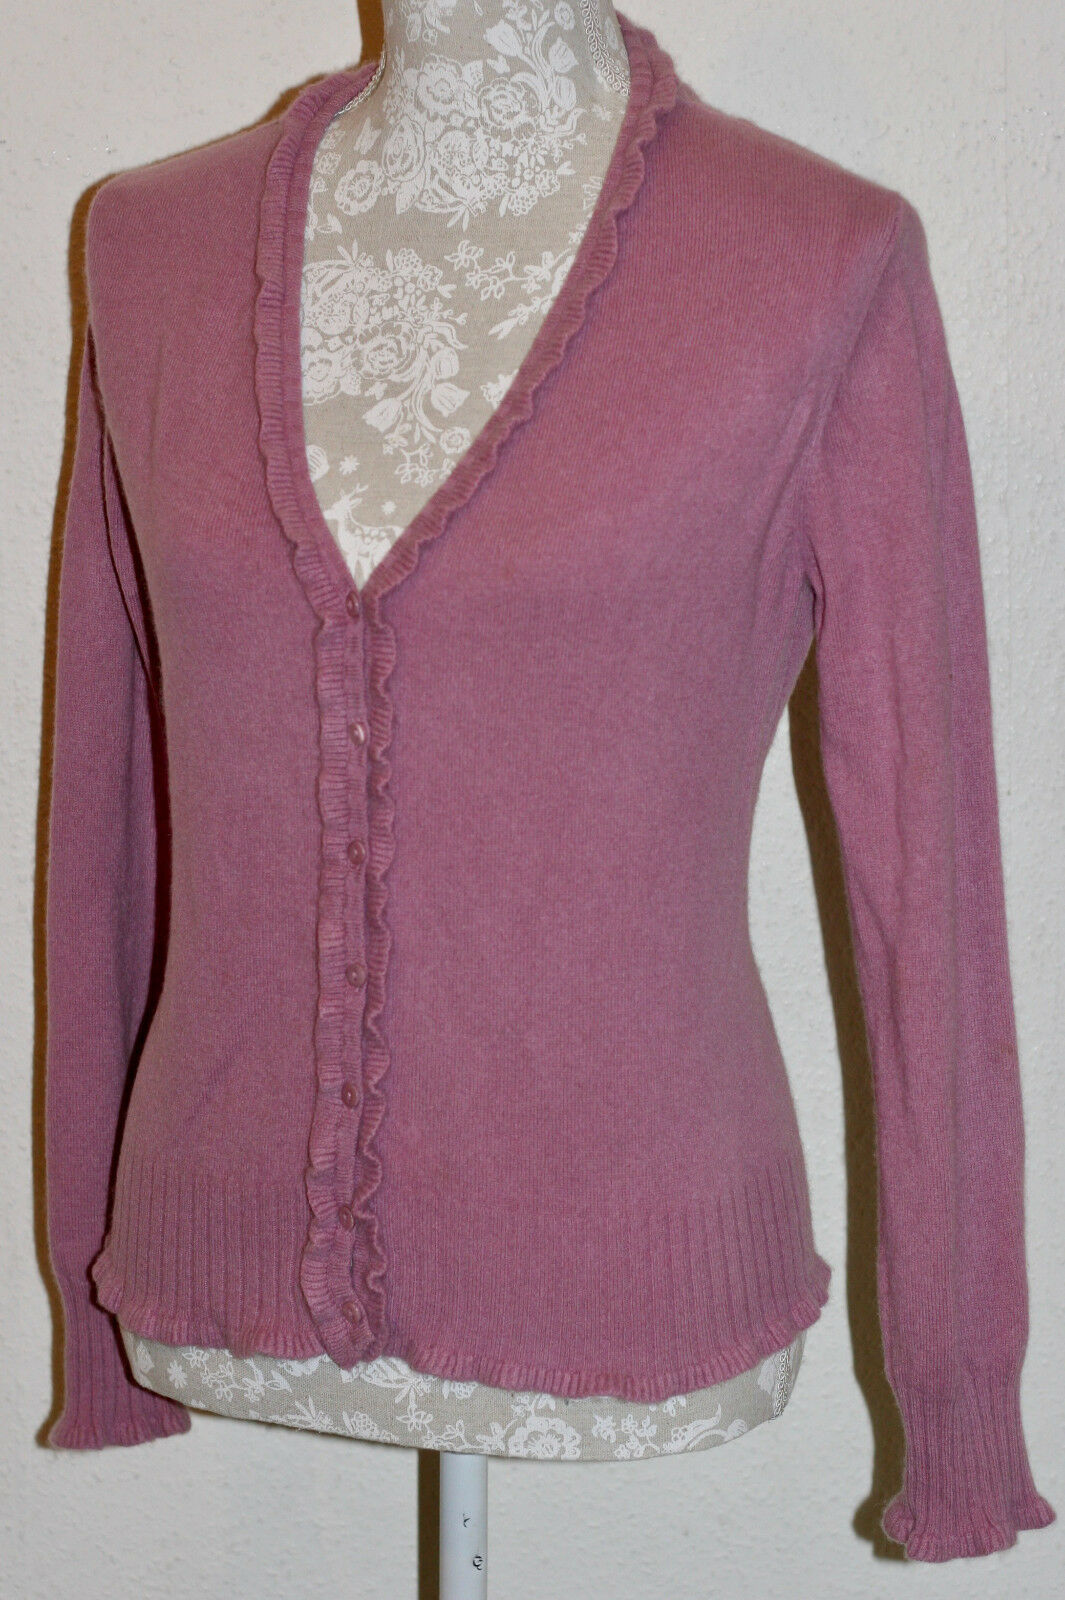 100% CASHMERE M 12 GC FONTANA ANTIQUE PINK RUFFLED & FLUTED SOFT KNIT CARDIGAN